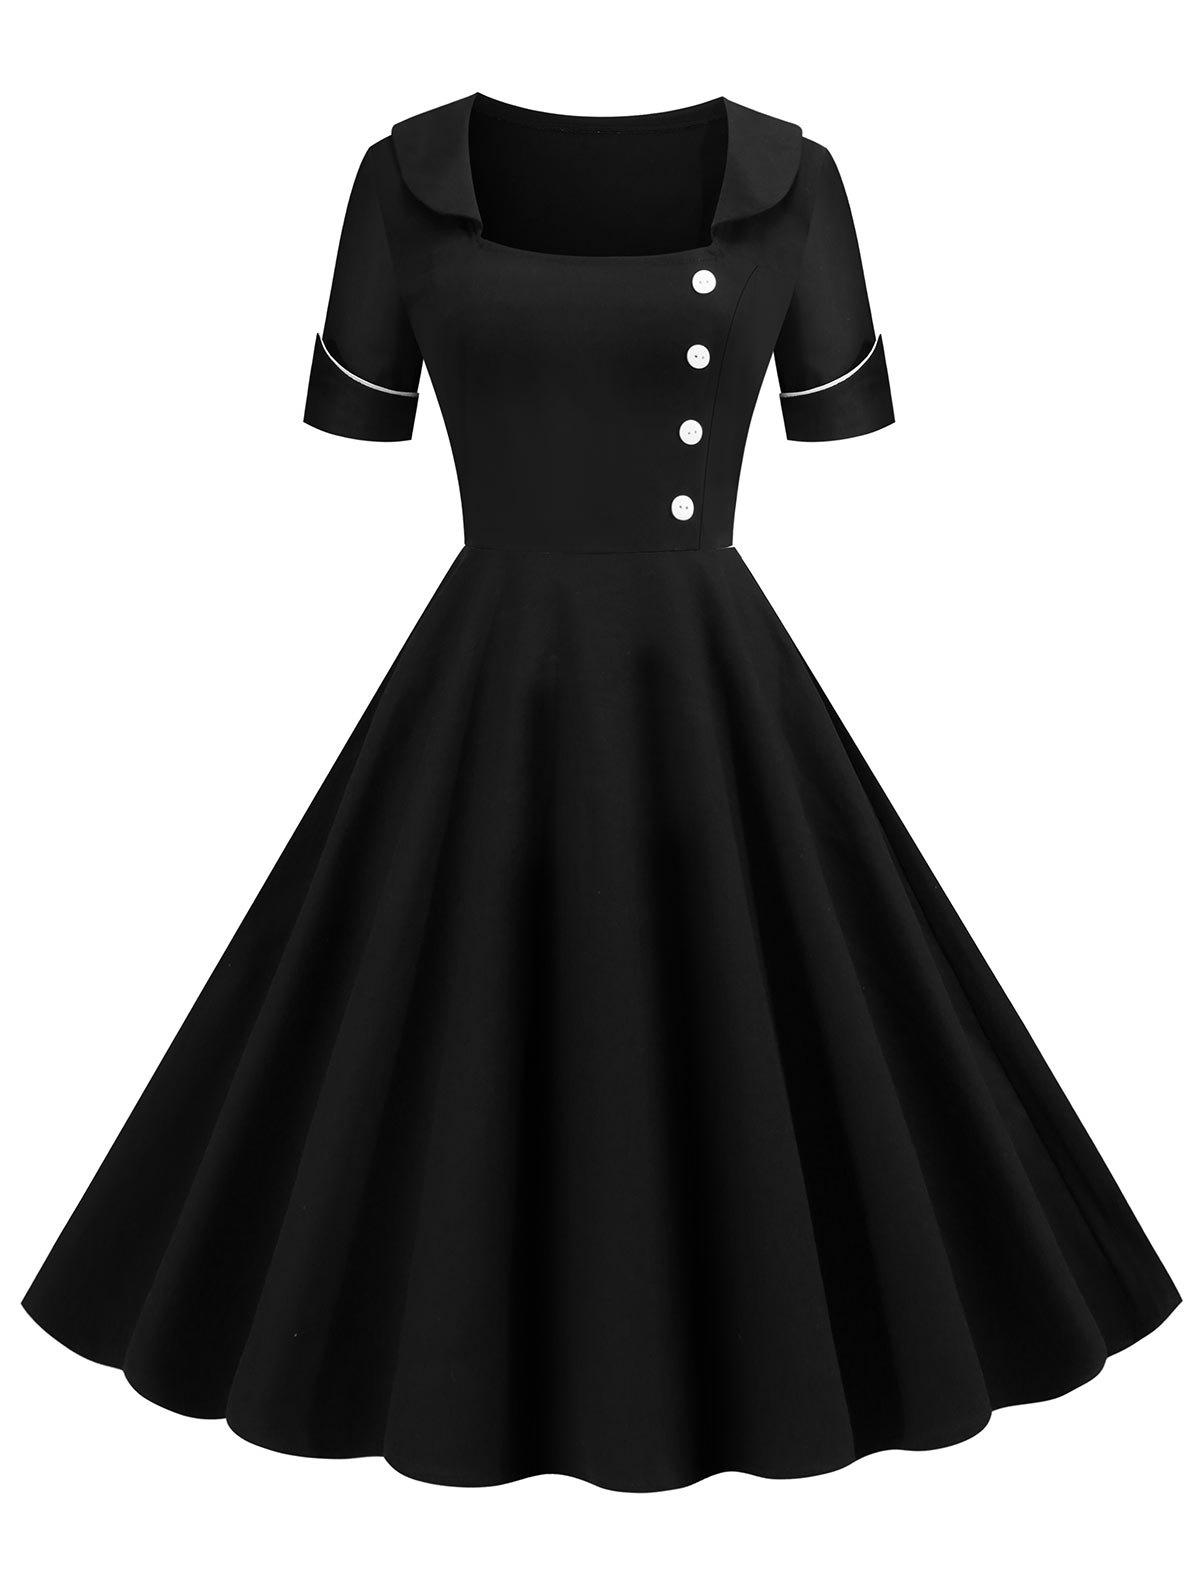 Contrast Piping Low Cut Buttoned Vintage Dress - BLACK XL